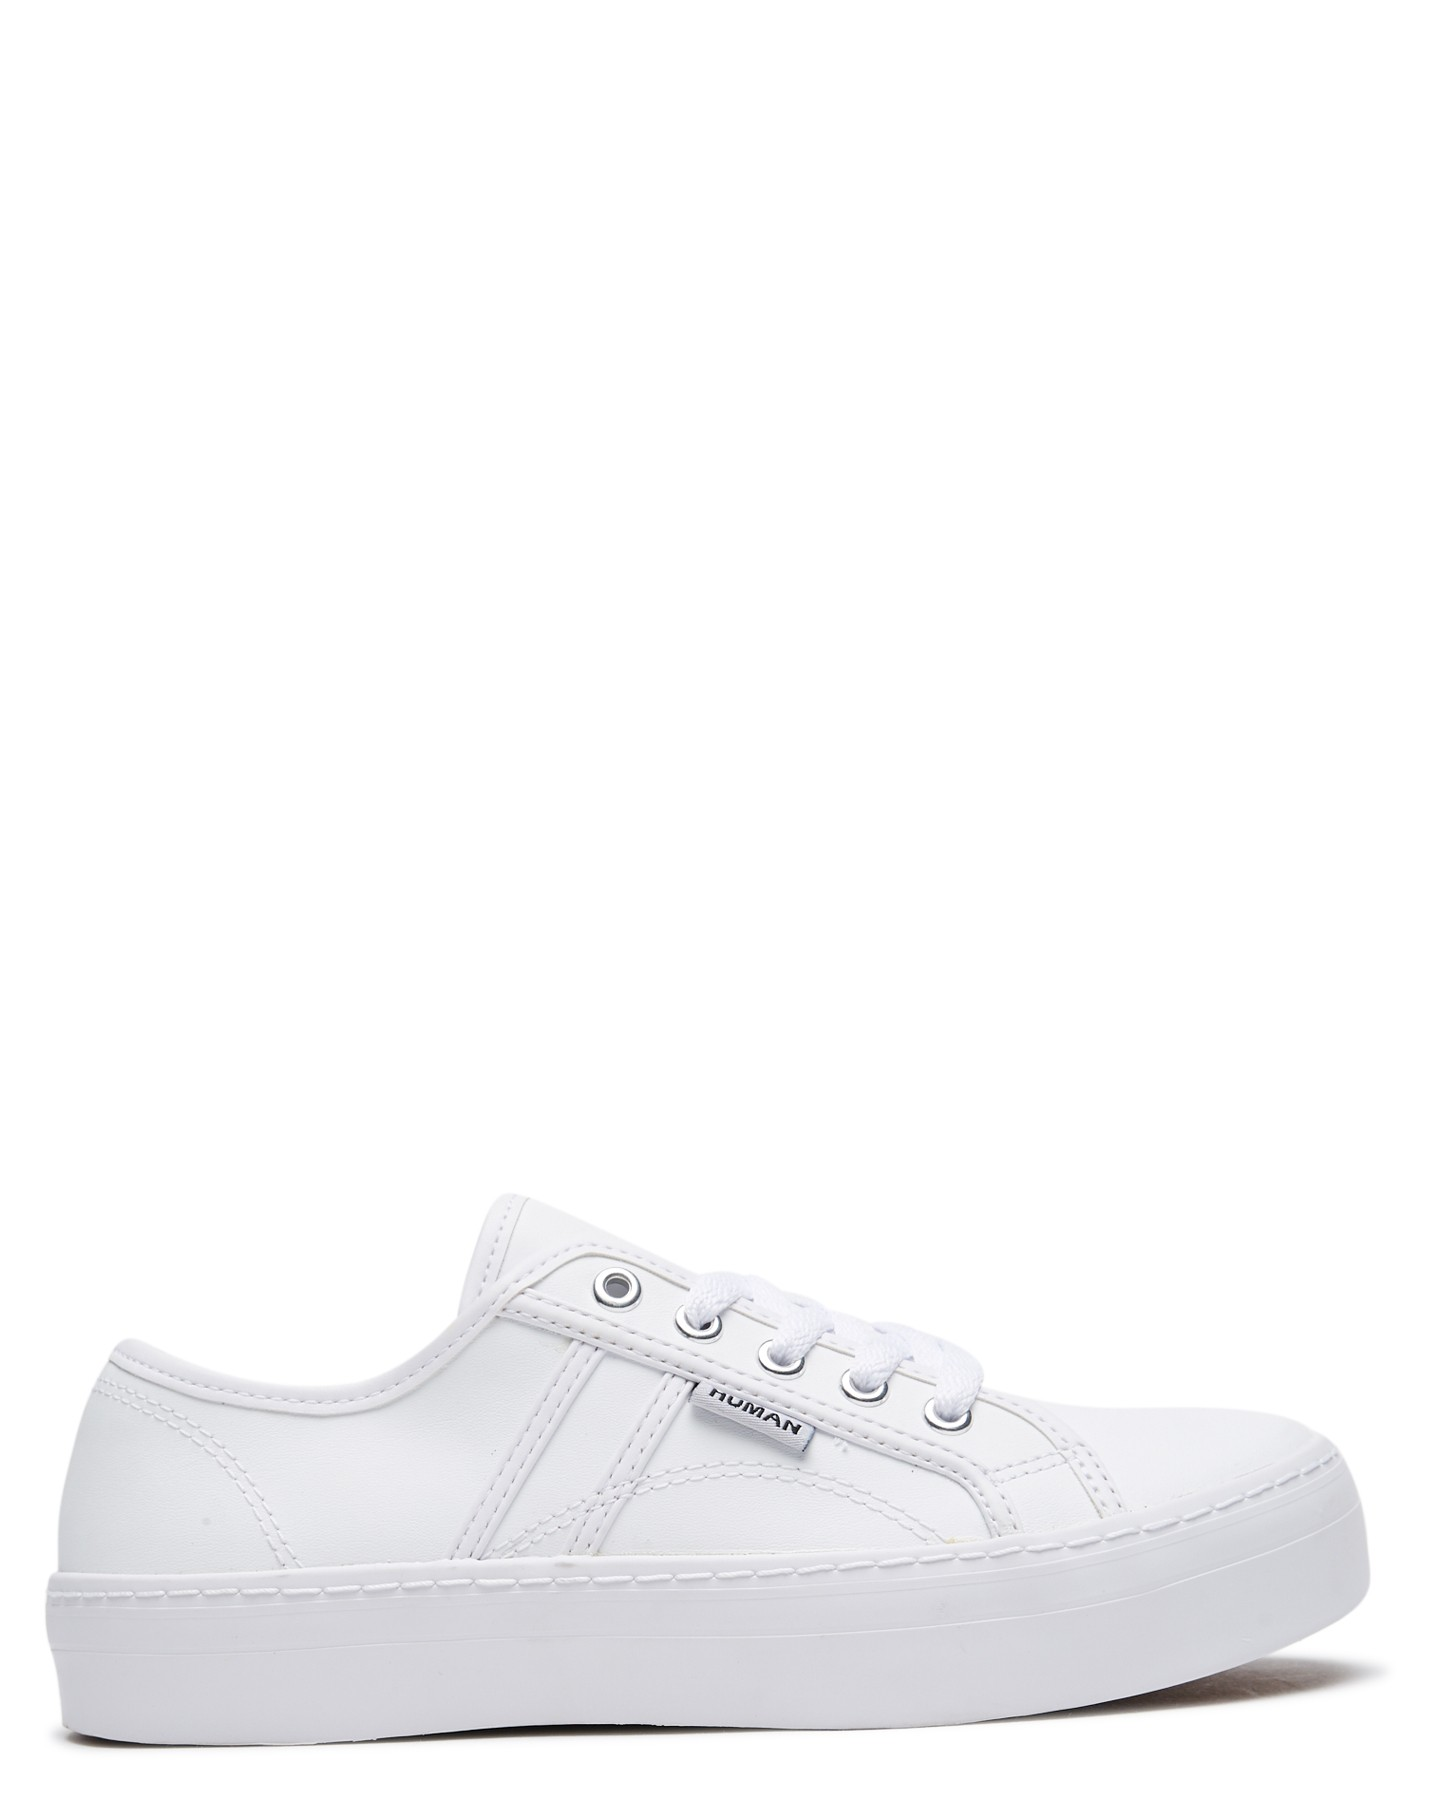 Human Footwear Womens Cass Leather Shoe White Leather